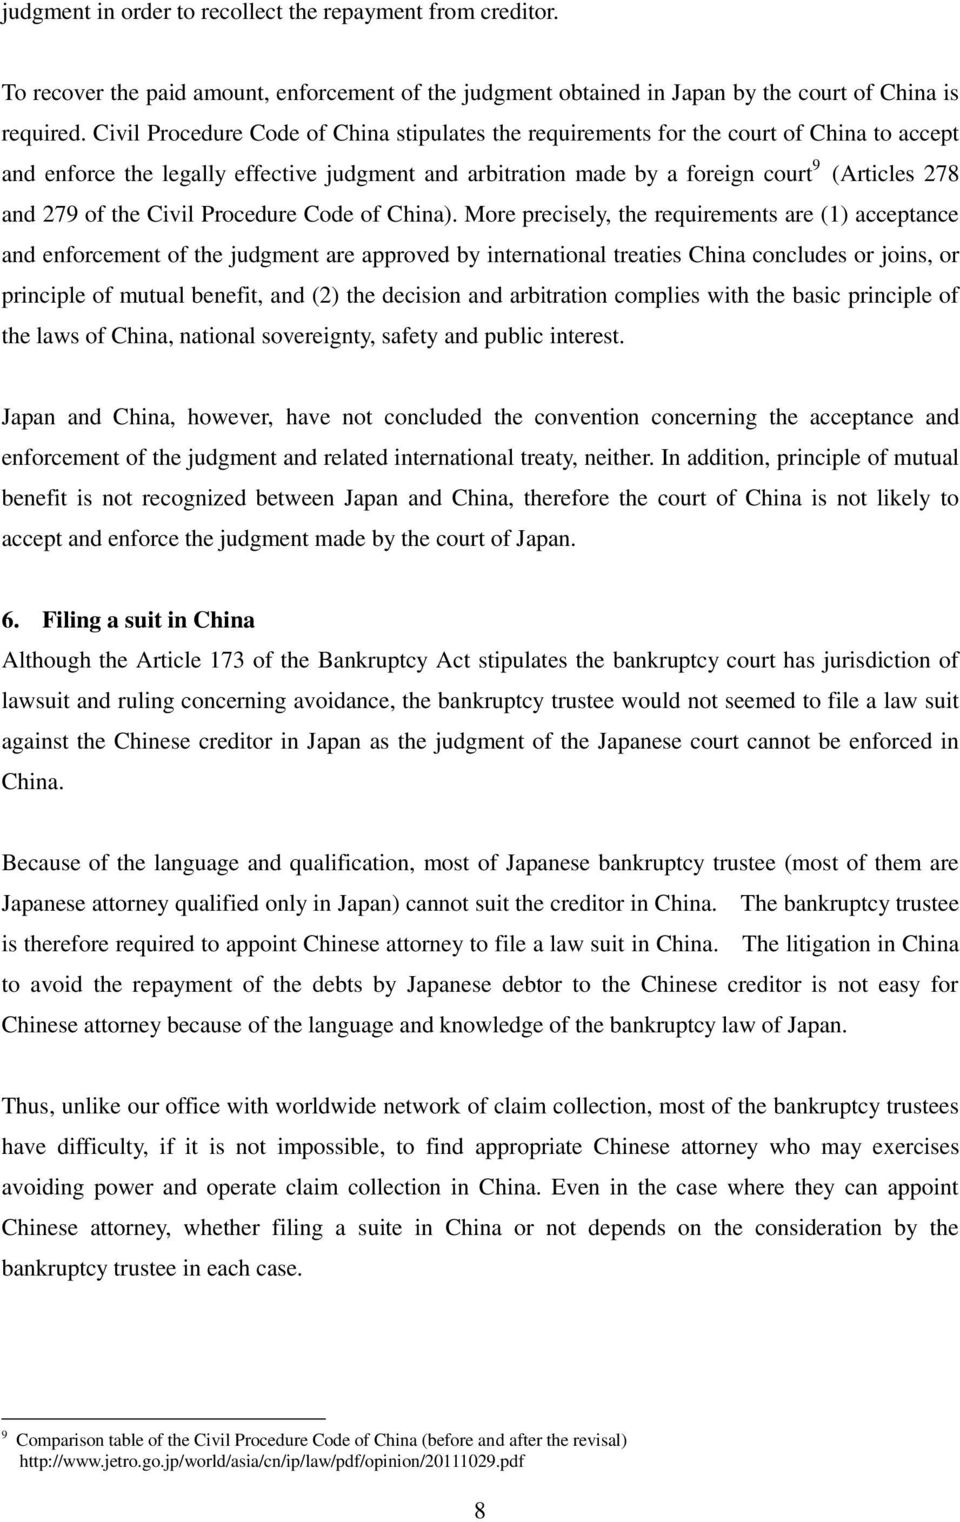 of the Civil Procedure Code of China).